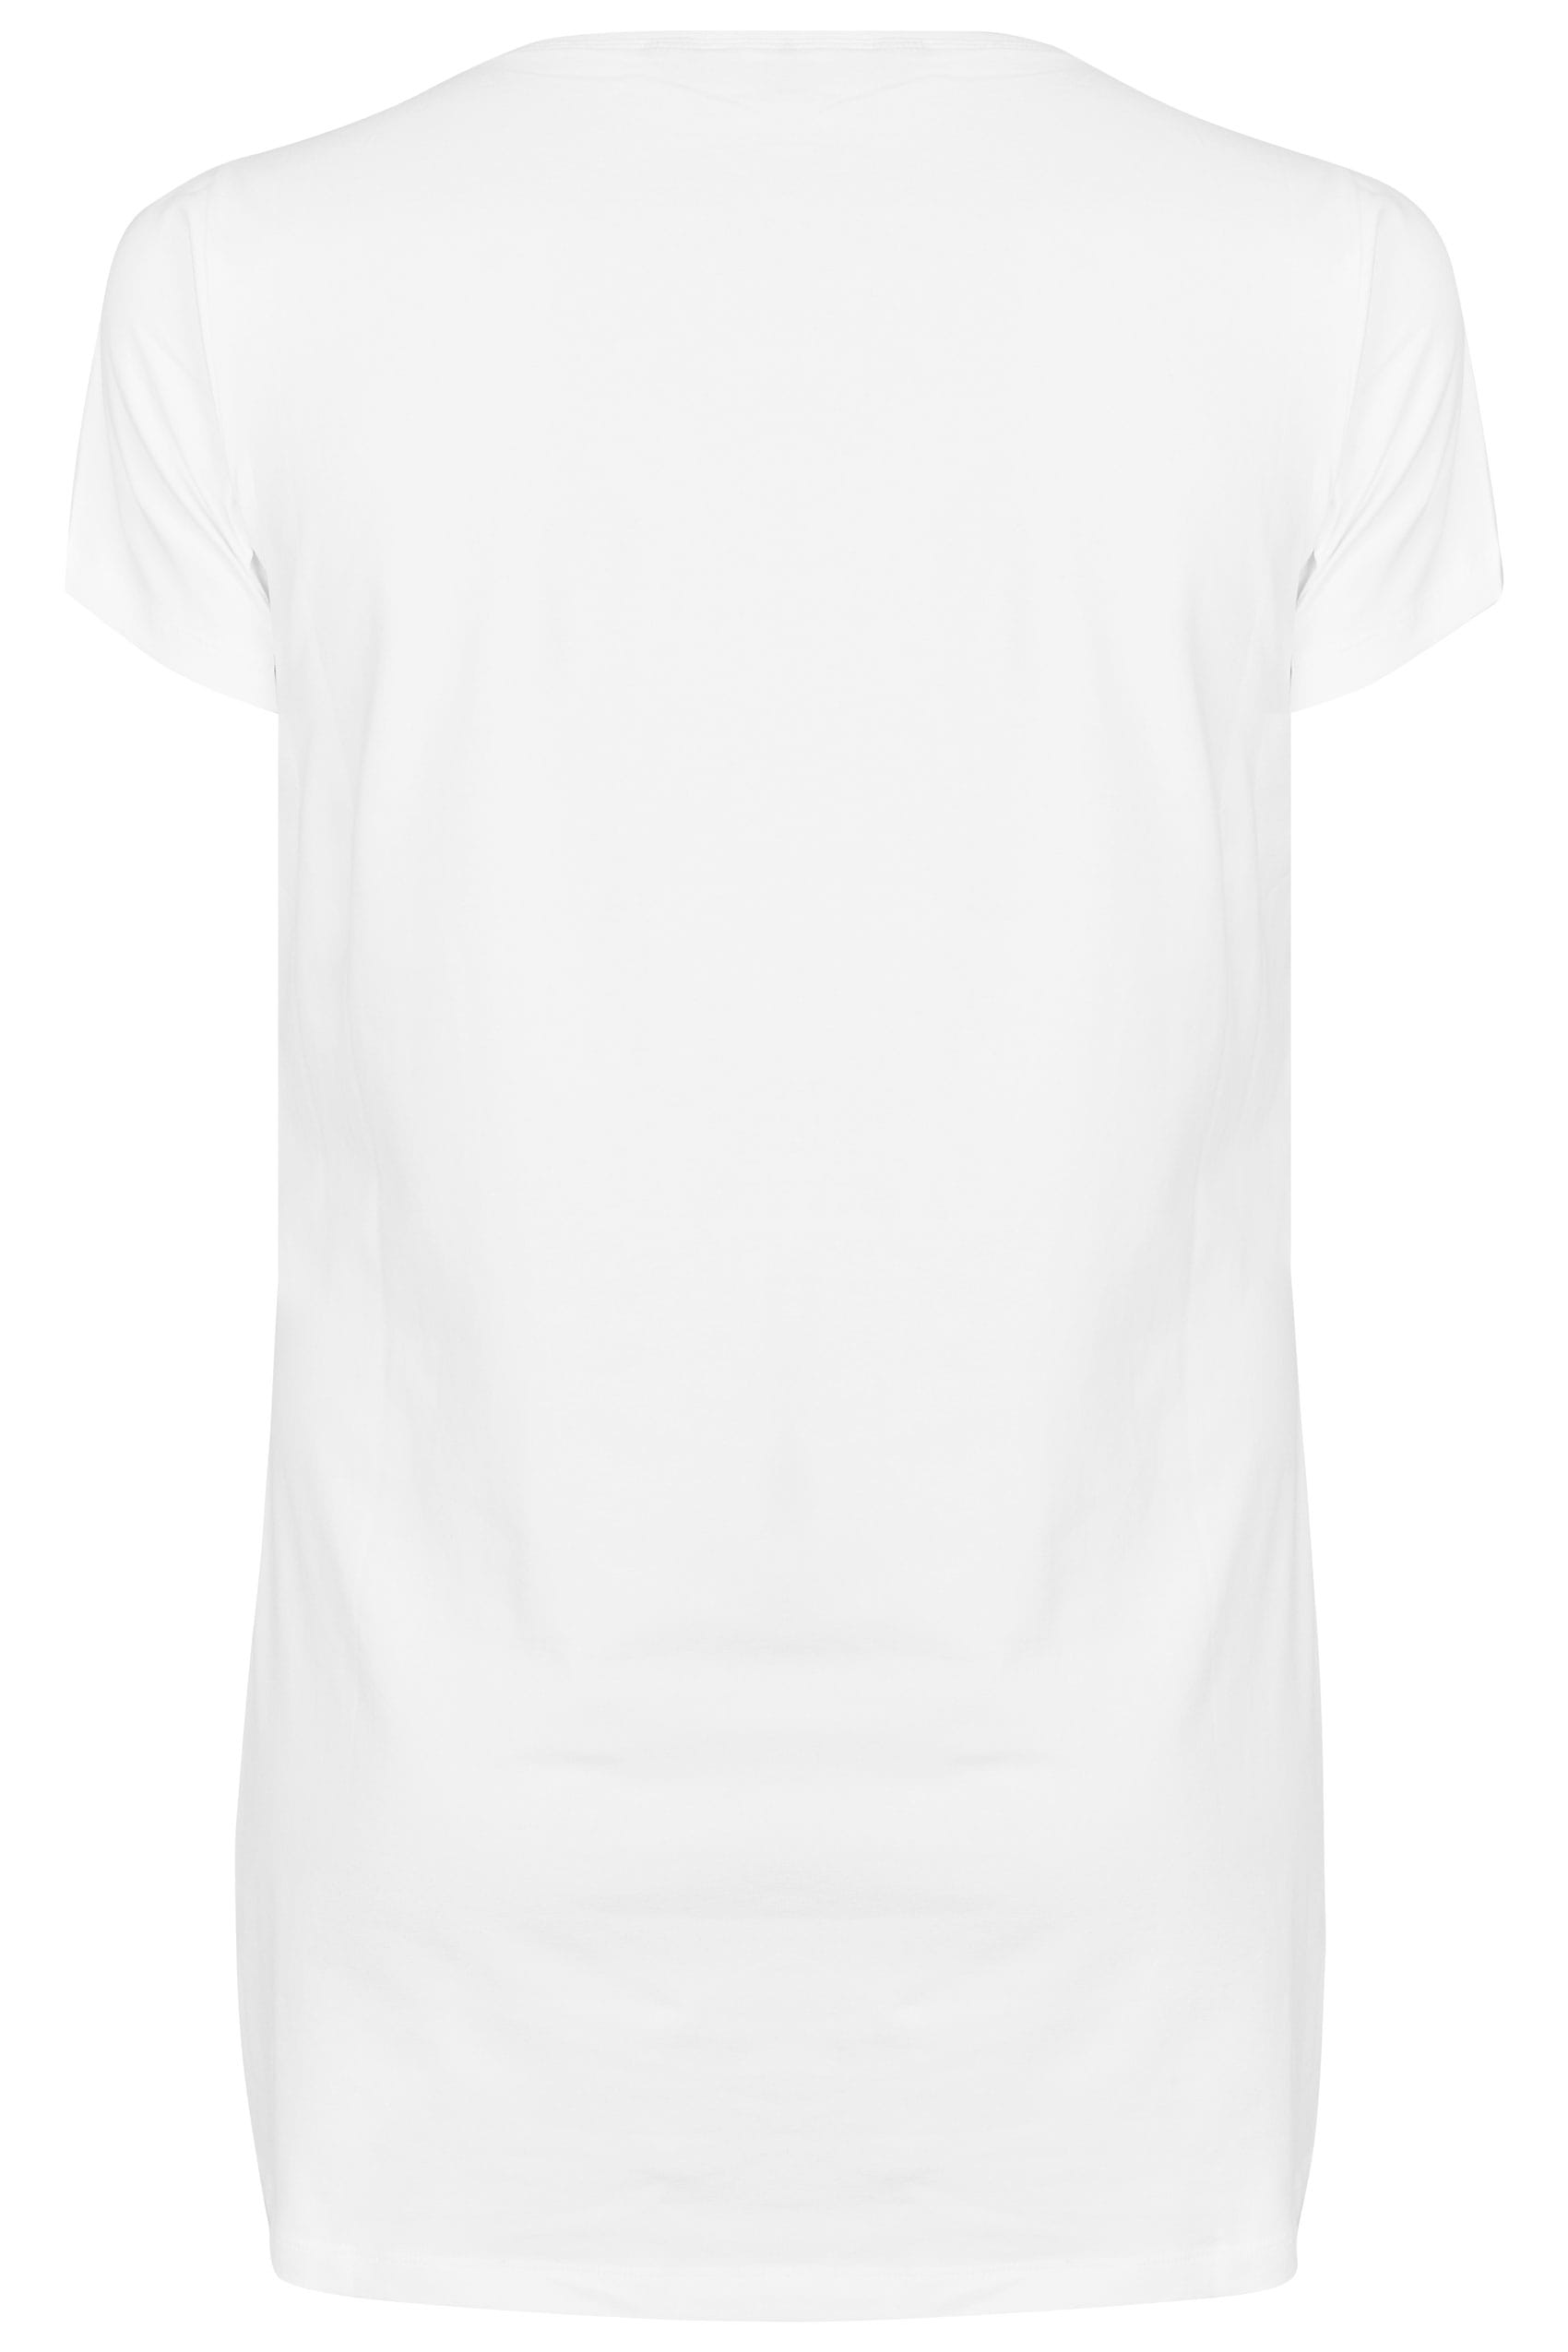 143 305 70httpswww Bing Commapsq Go To Www Bing Com Form Hdrsc4: White Scoop Neck Longline Jersey T-Shirt, Plus Size 16 To 36